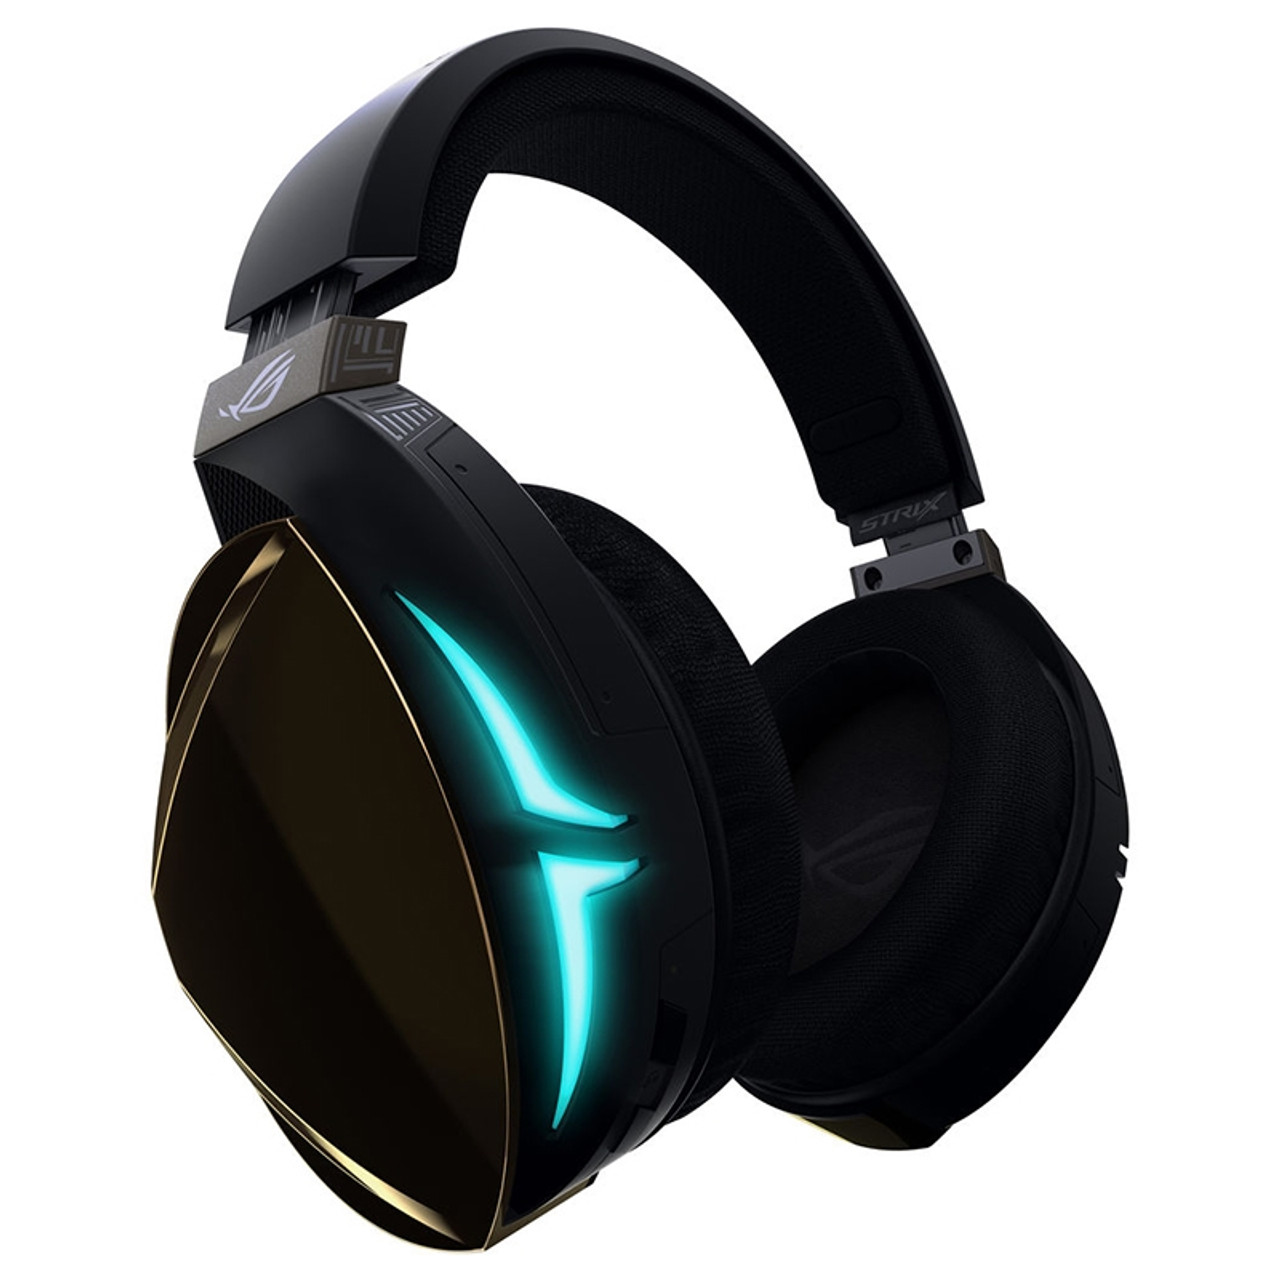 Image for Asus ROG Strix Fusion 500 RGB Virtual 7.1 USB Gaming Headset CX Computer Superstore